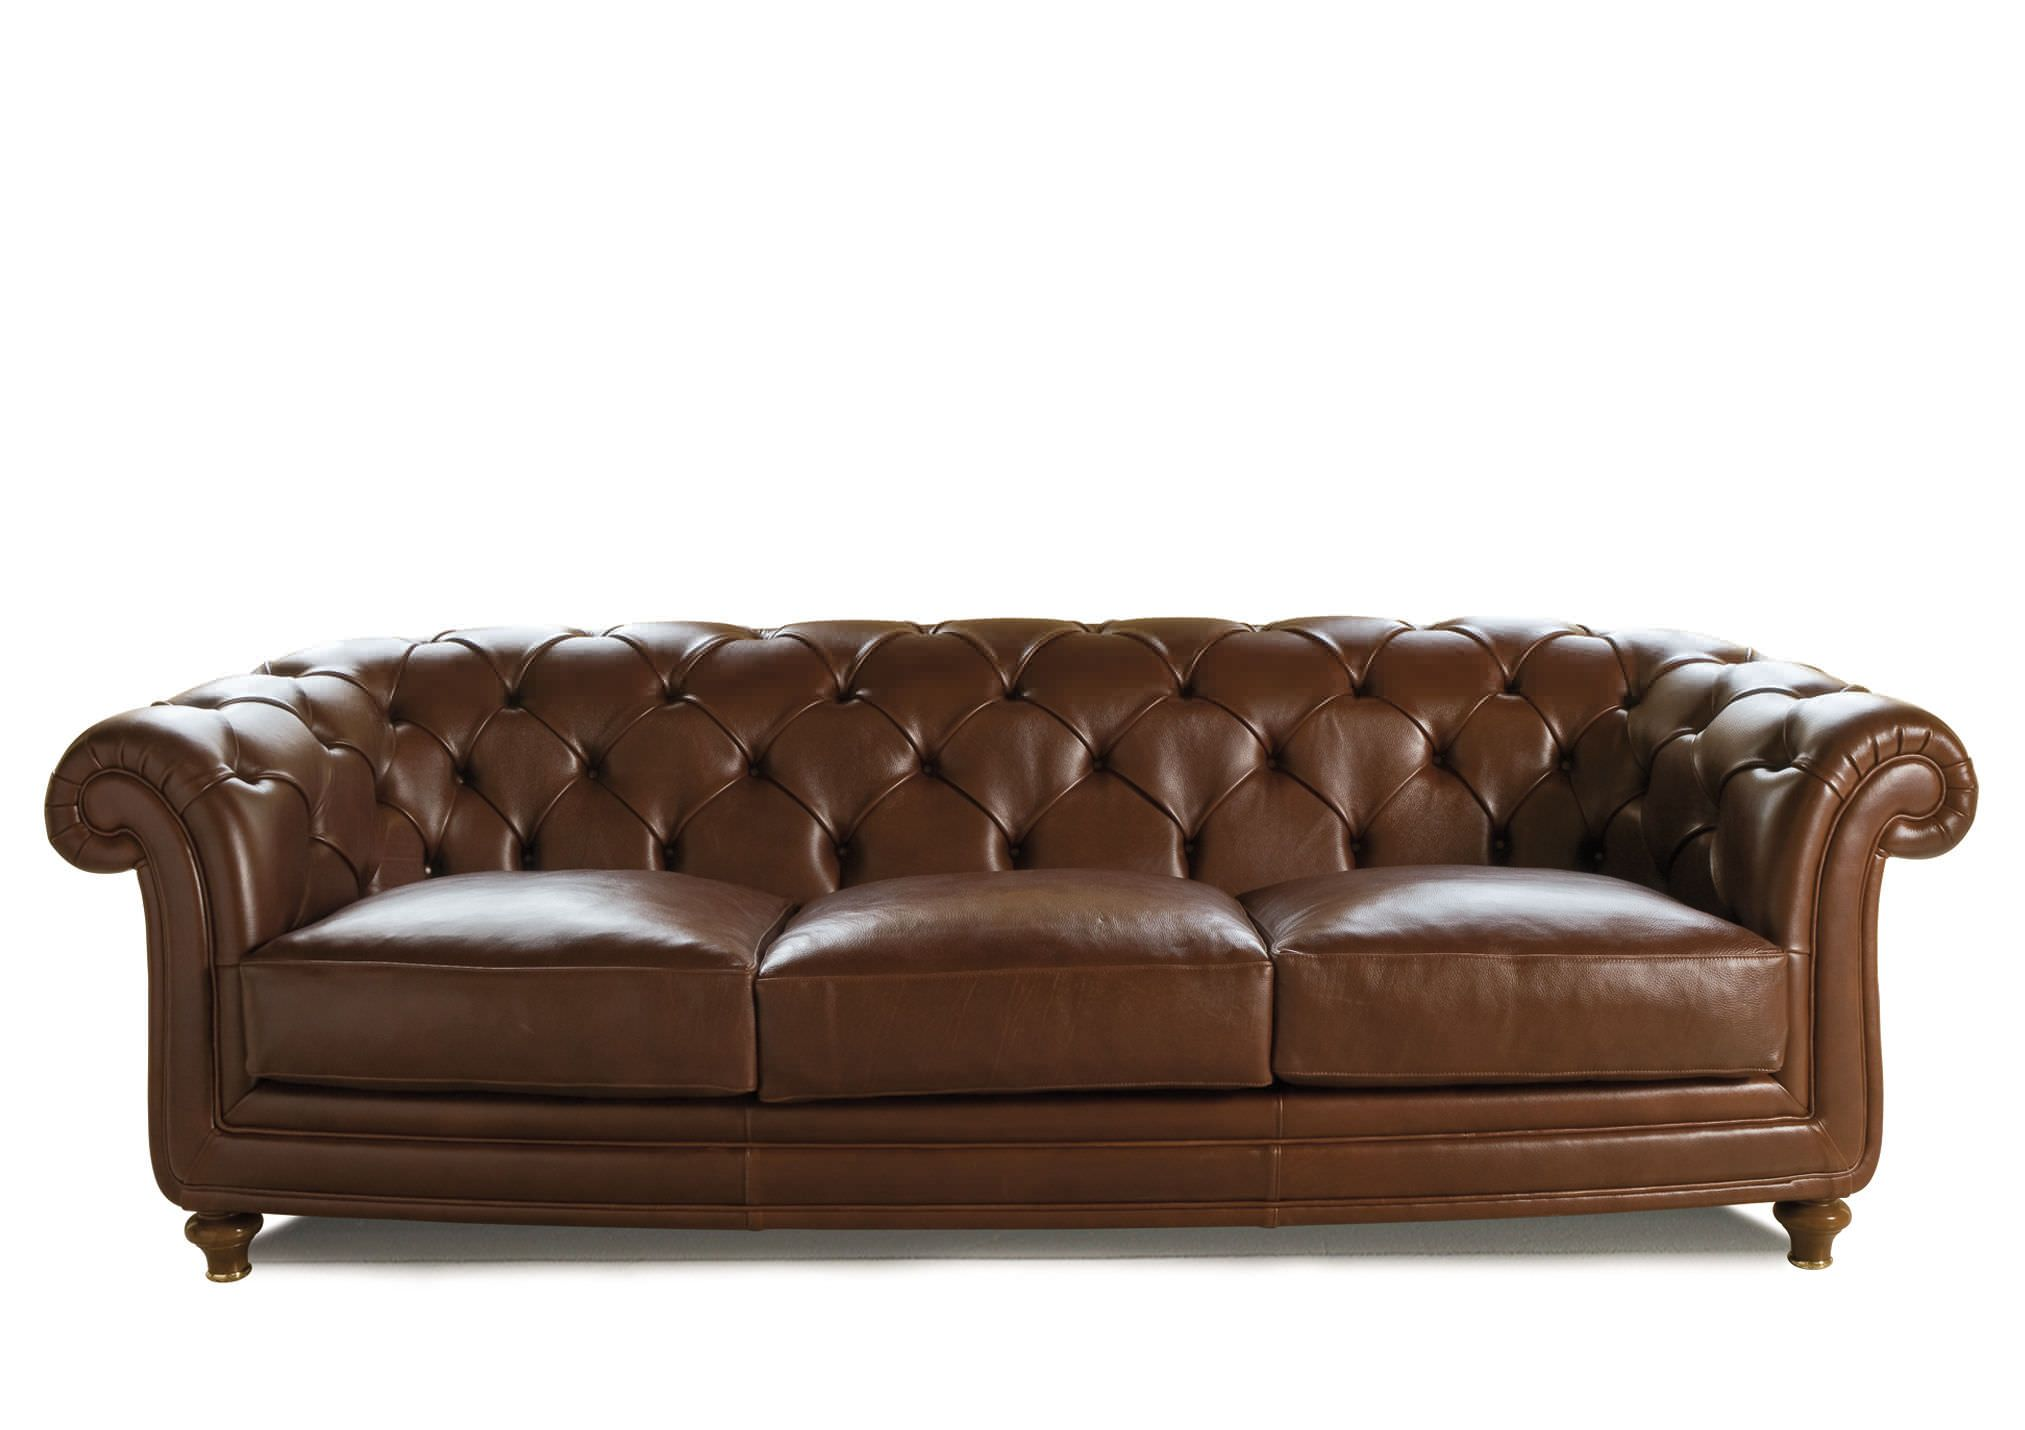 Chesterfield Suites Sofa Leder Chesterfield Suites Tan Chesterfield Sofa Grau Samt